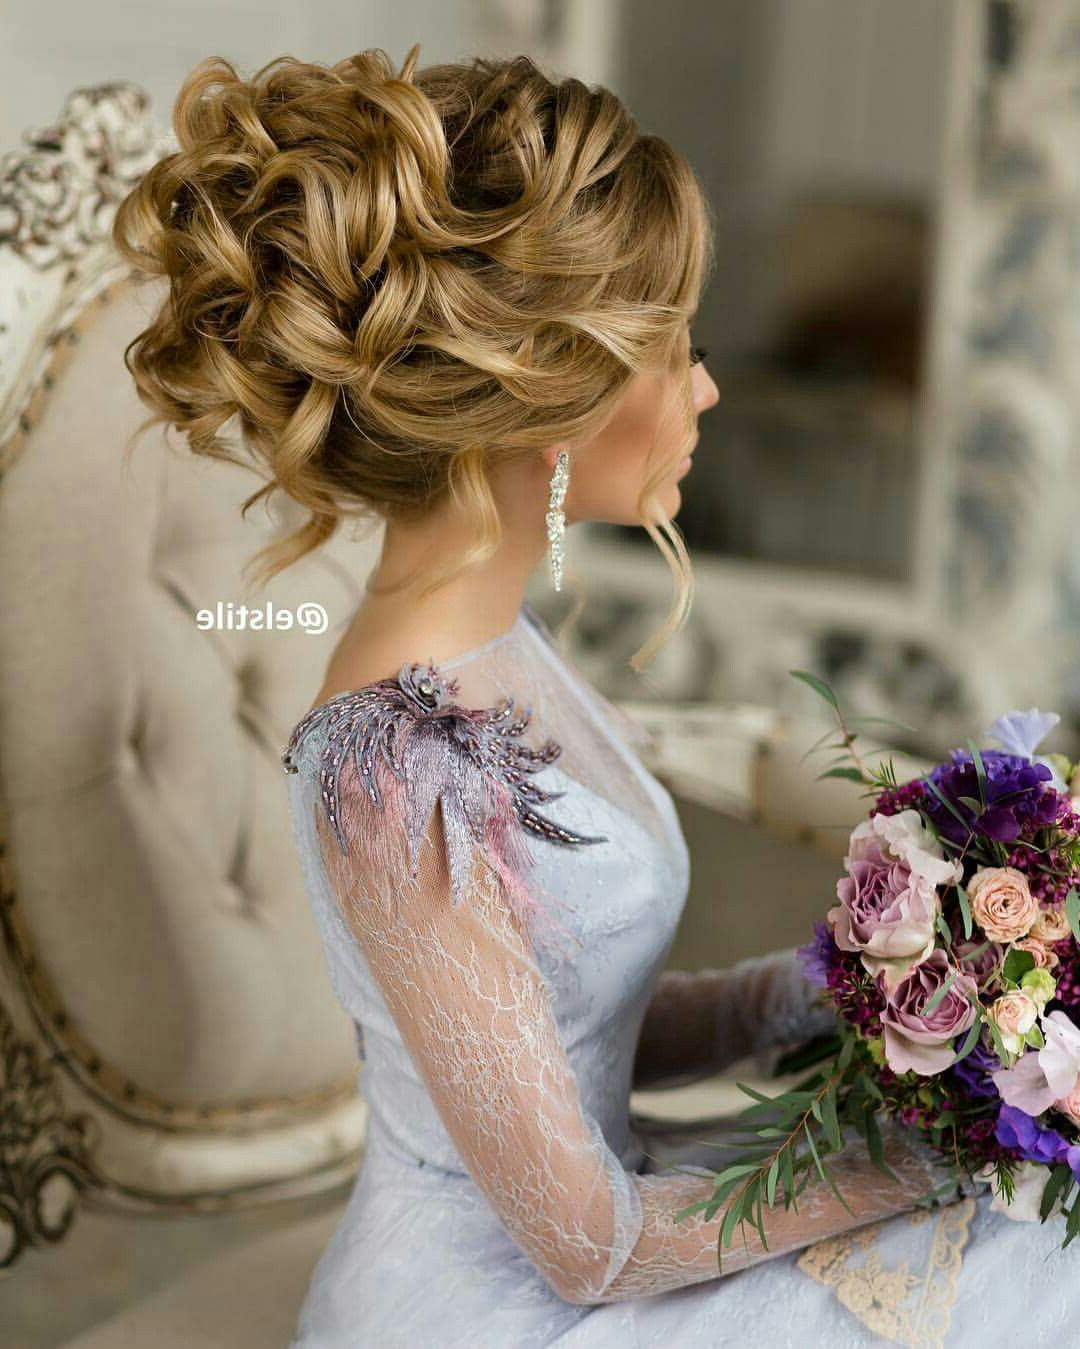 Well Liked Lifted Curls Updo Hairstyles For Weddings With Wedding Updo, Stunning! You Can Add Extensions If You Need To (View 10 of 20)